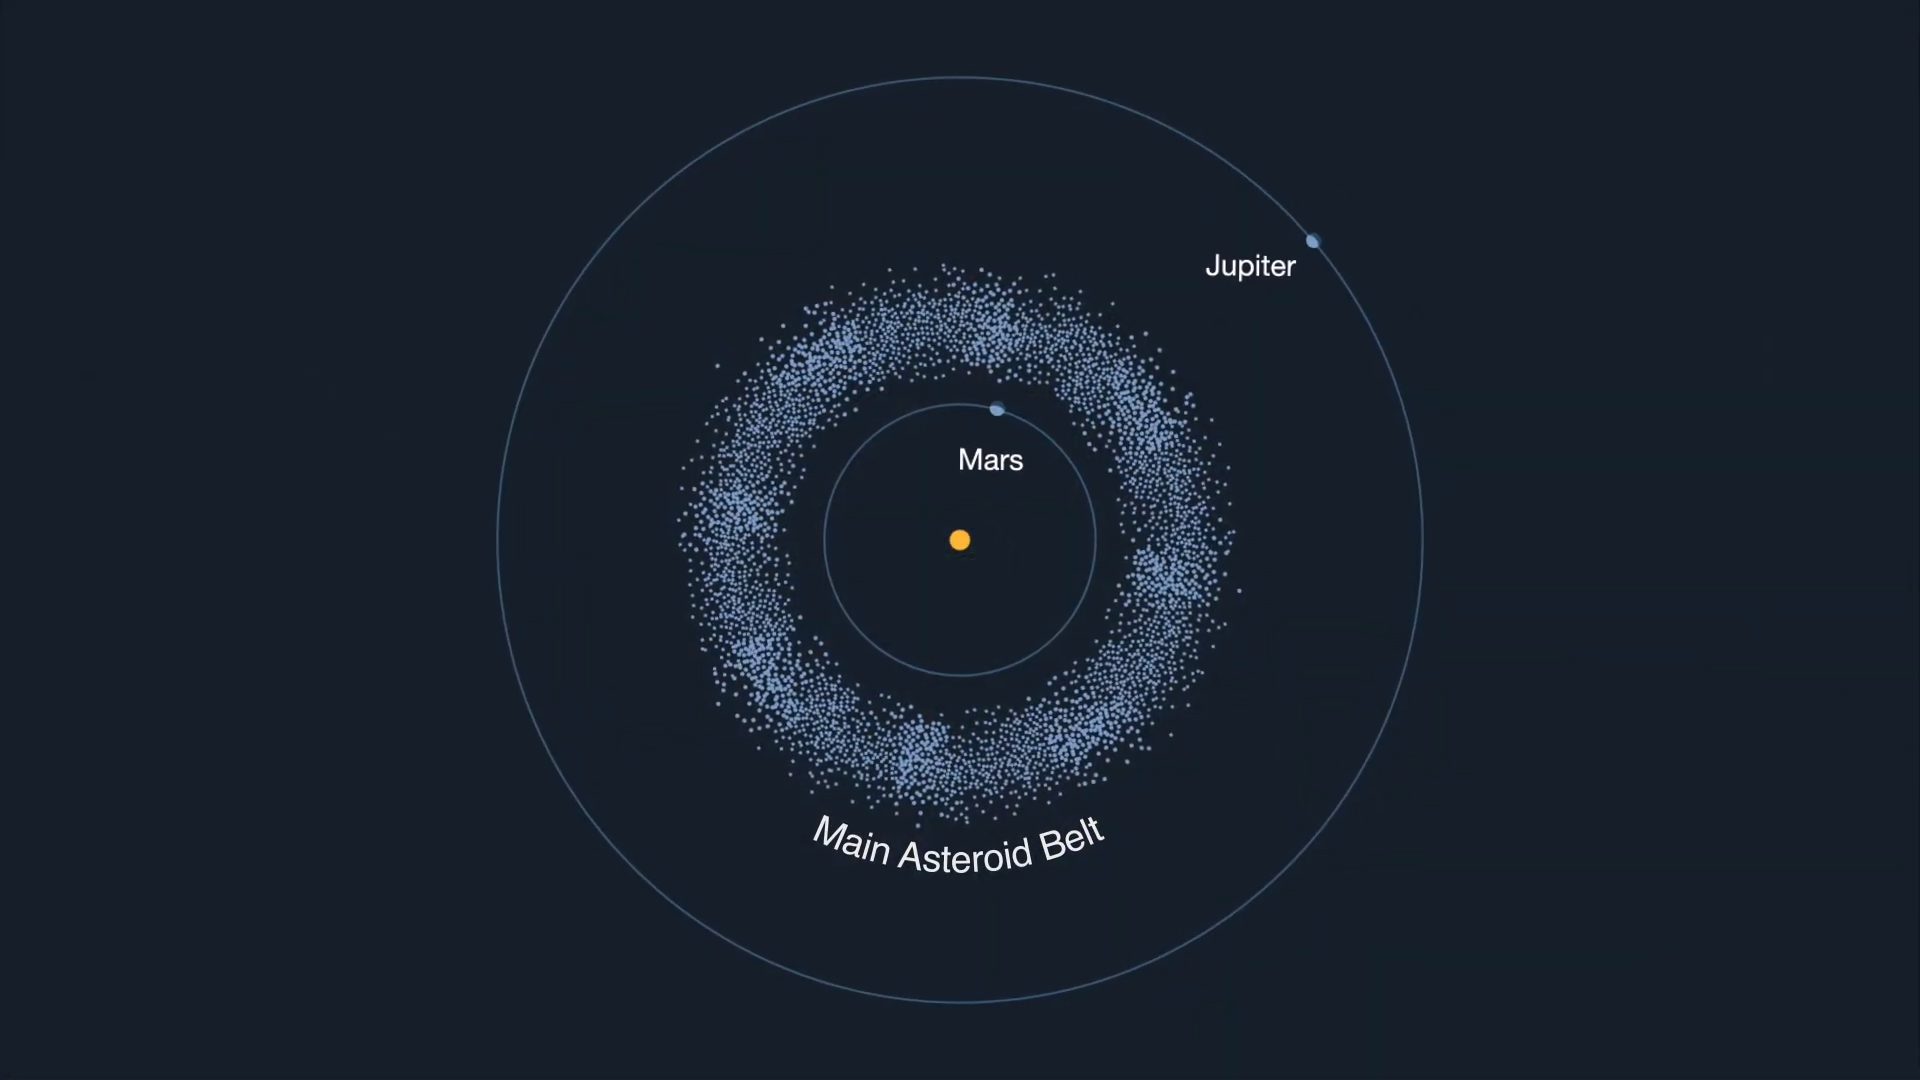 Diagram showing main asteroid belt between Mars and Jupiter.